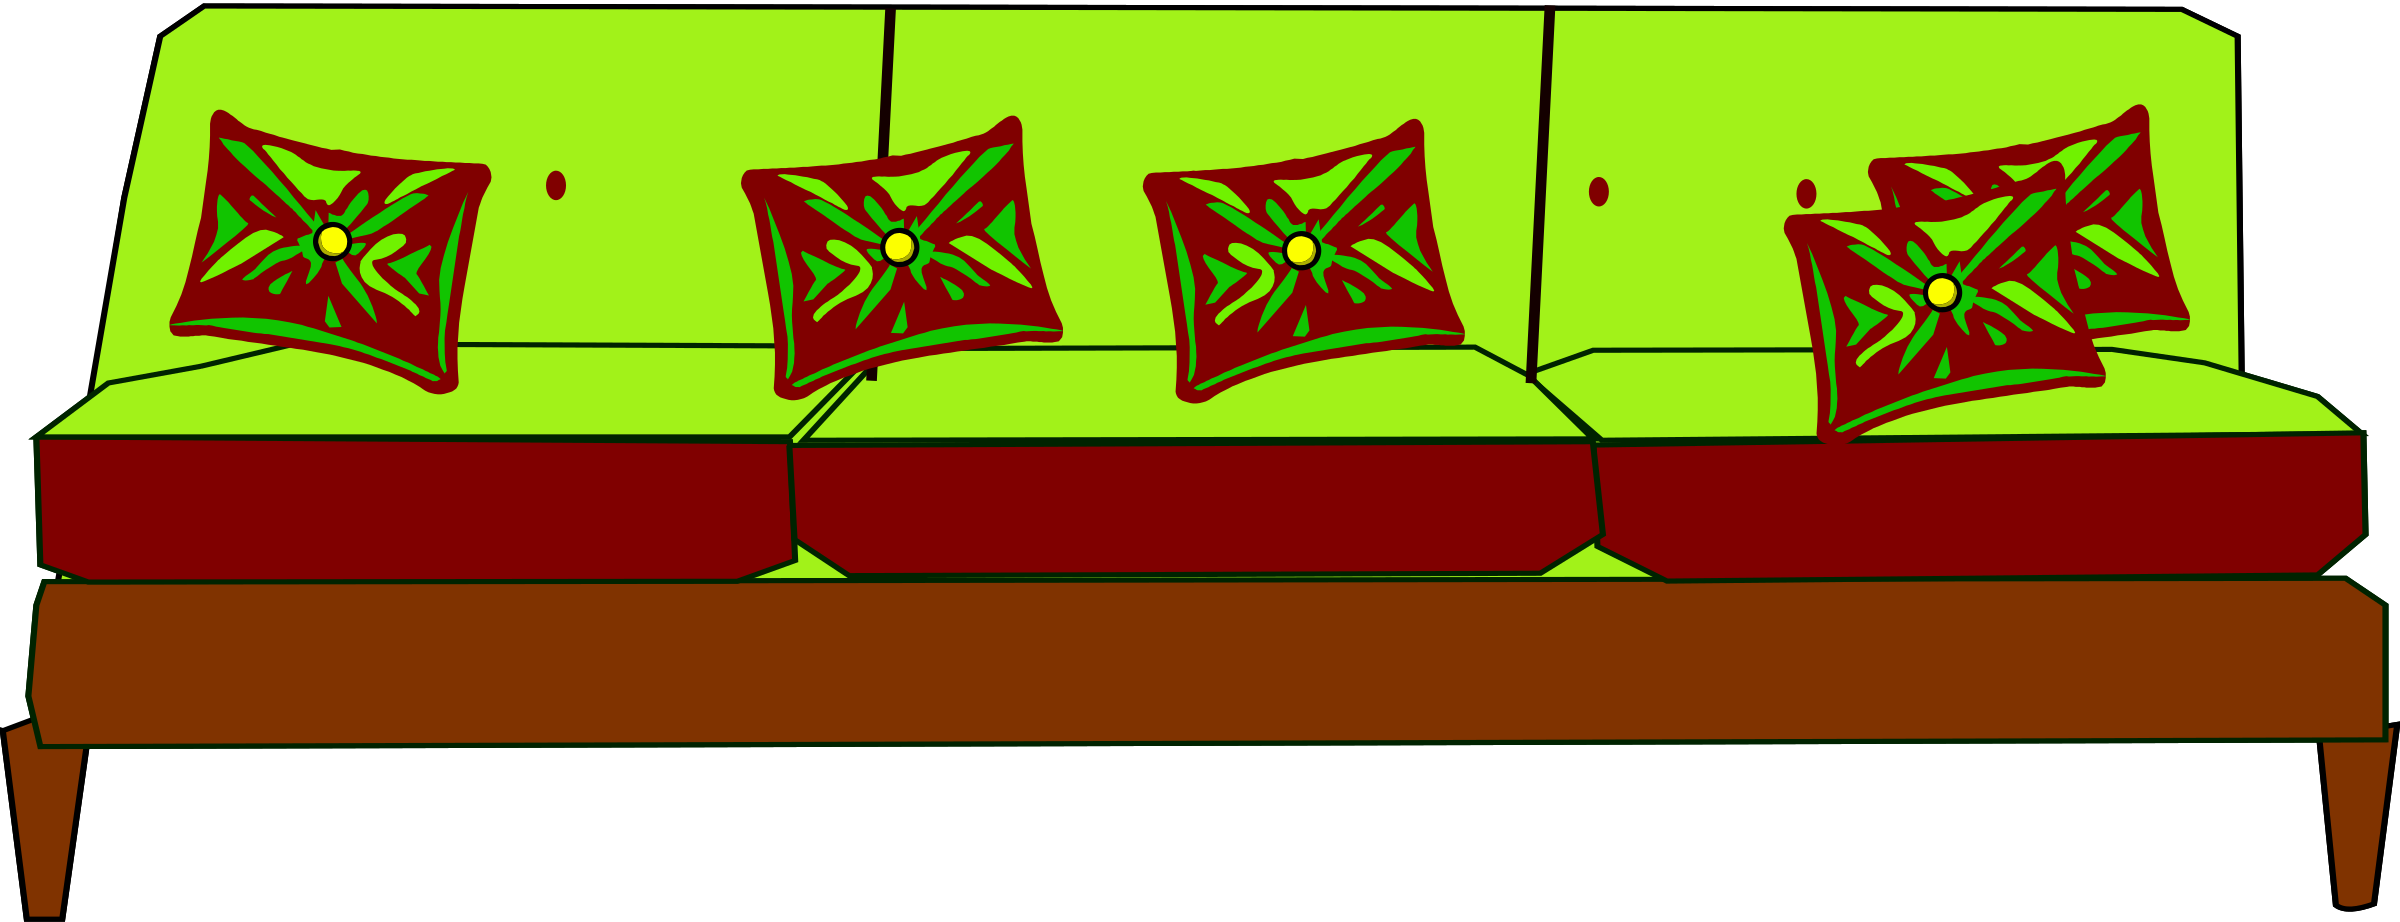 Designed big image png. Couch clipart canape